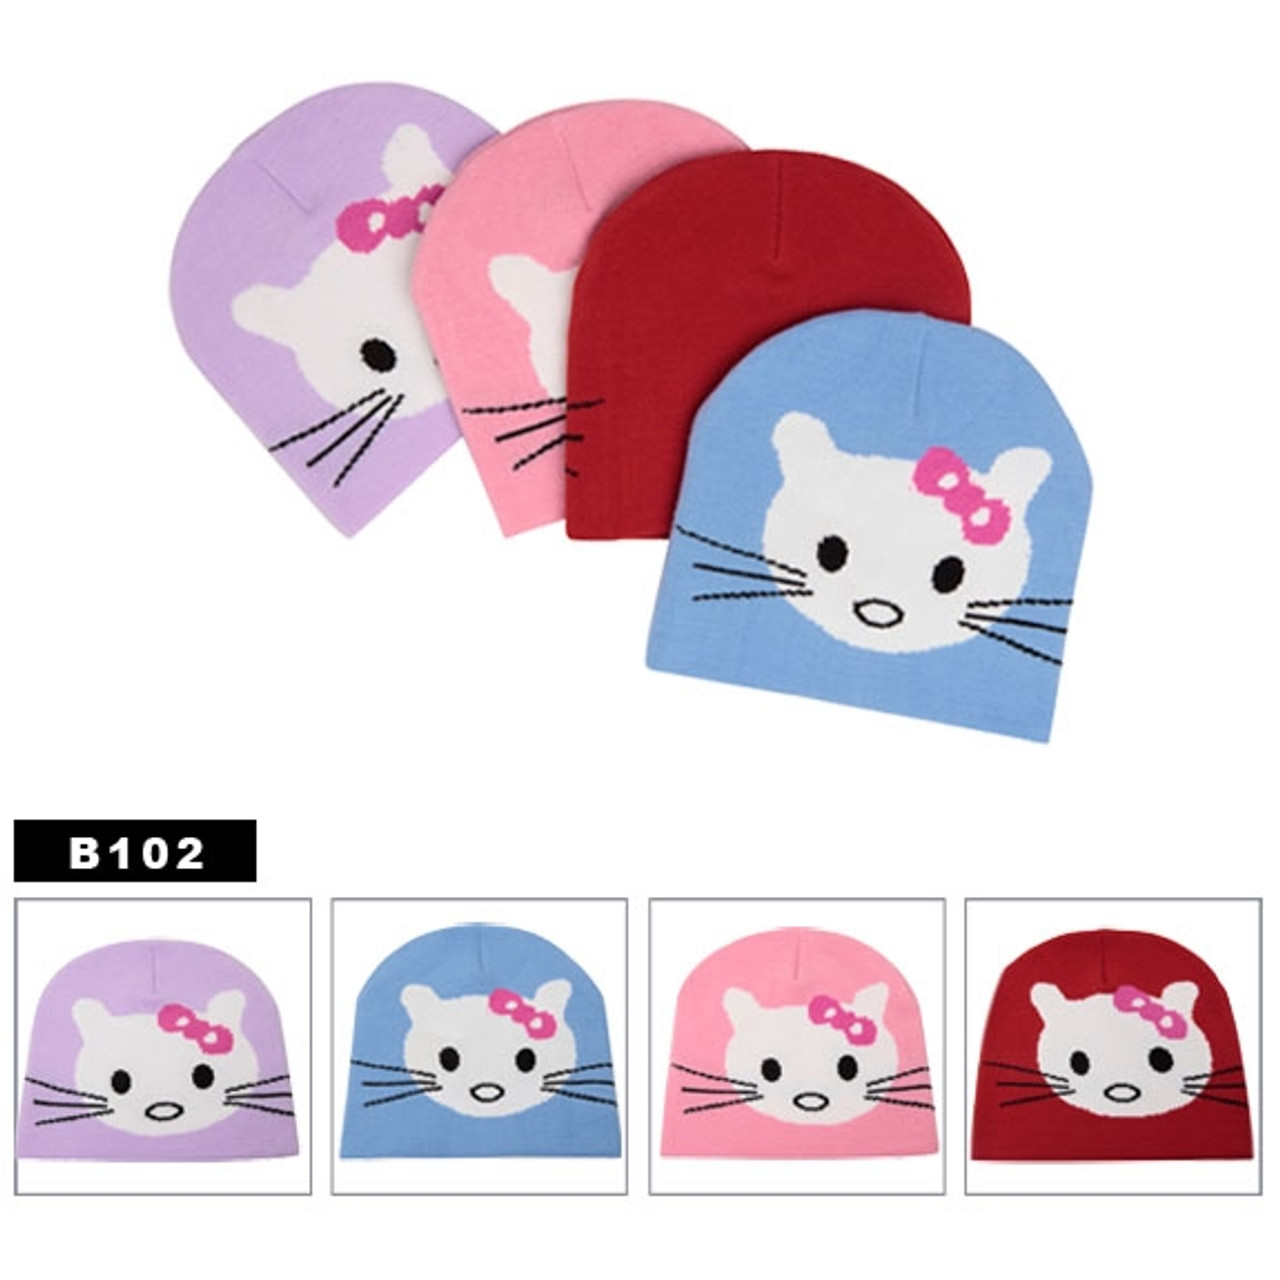 Meow, Meow Cute Kitten Caps.